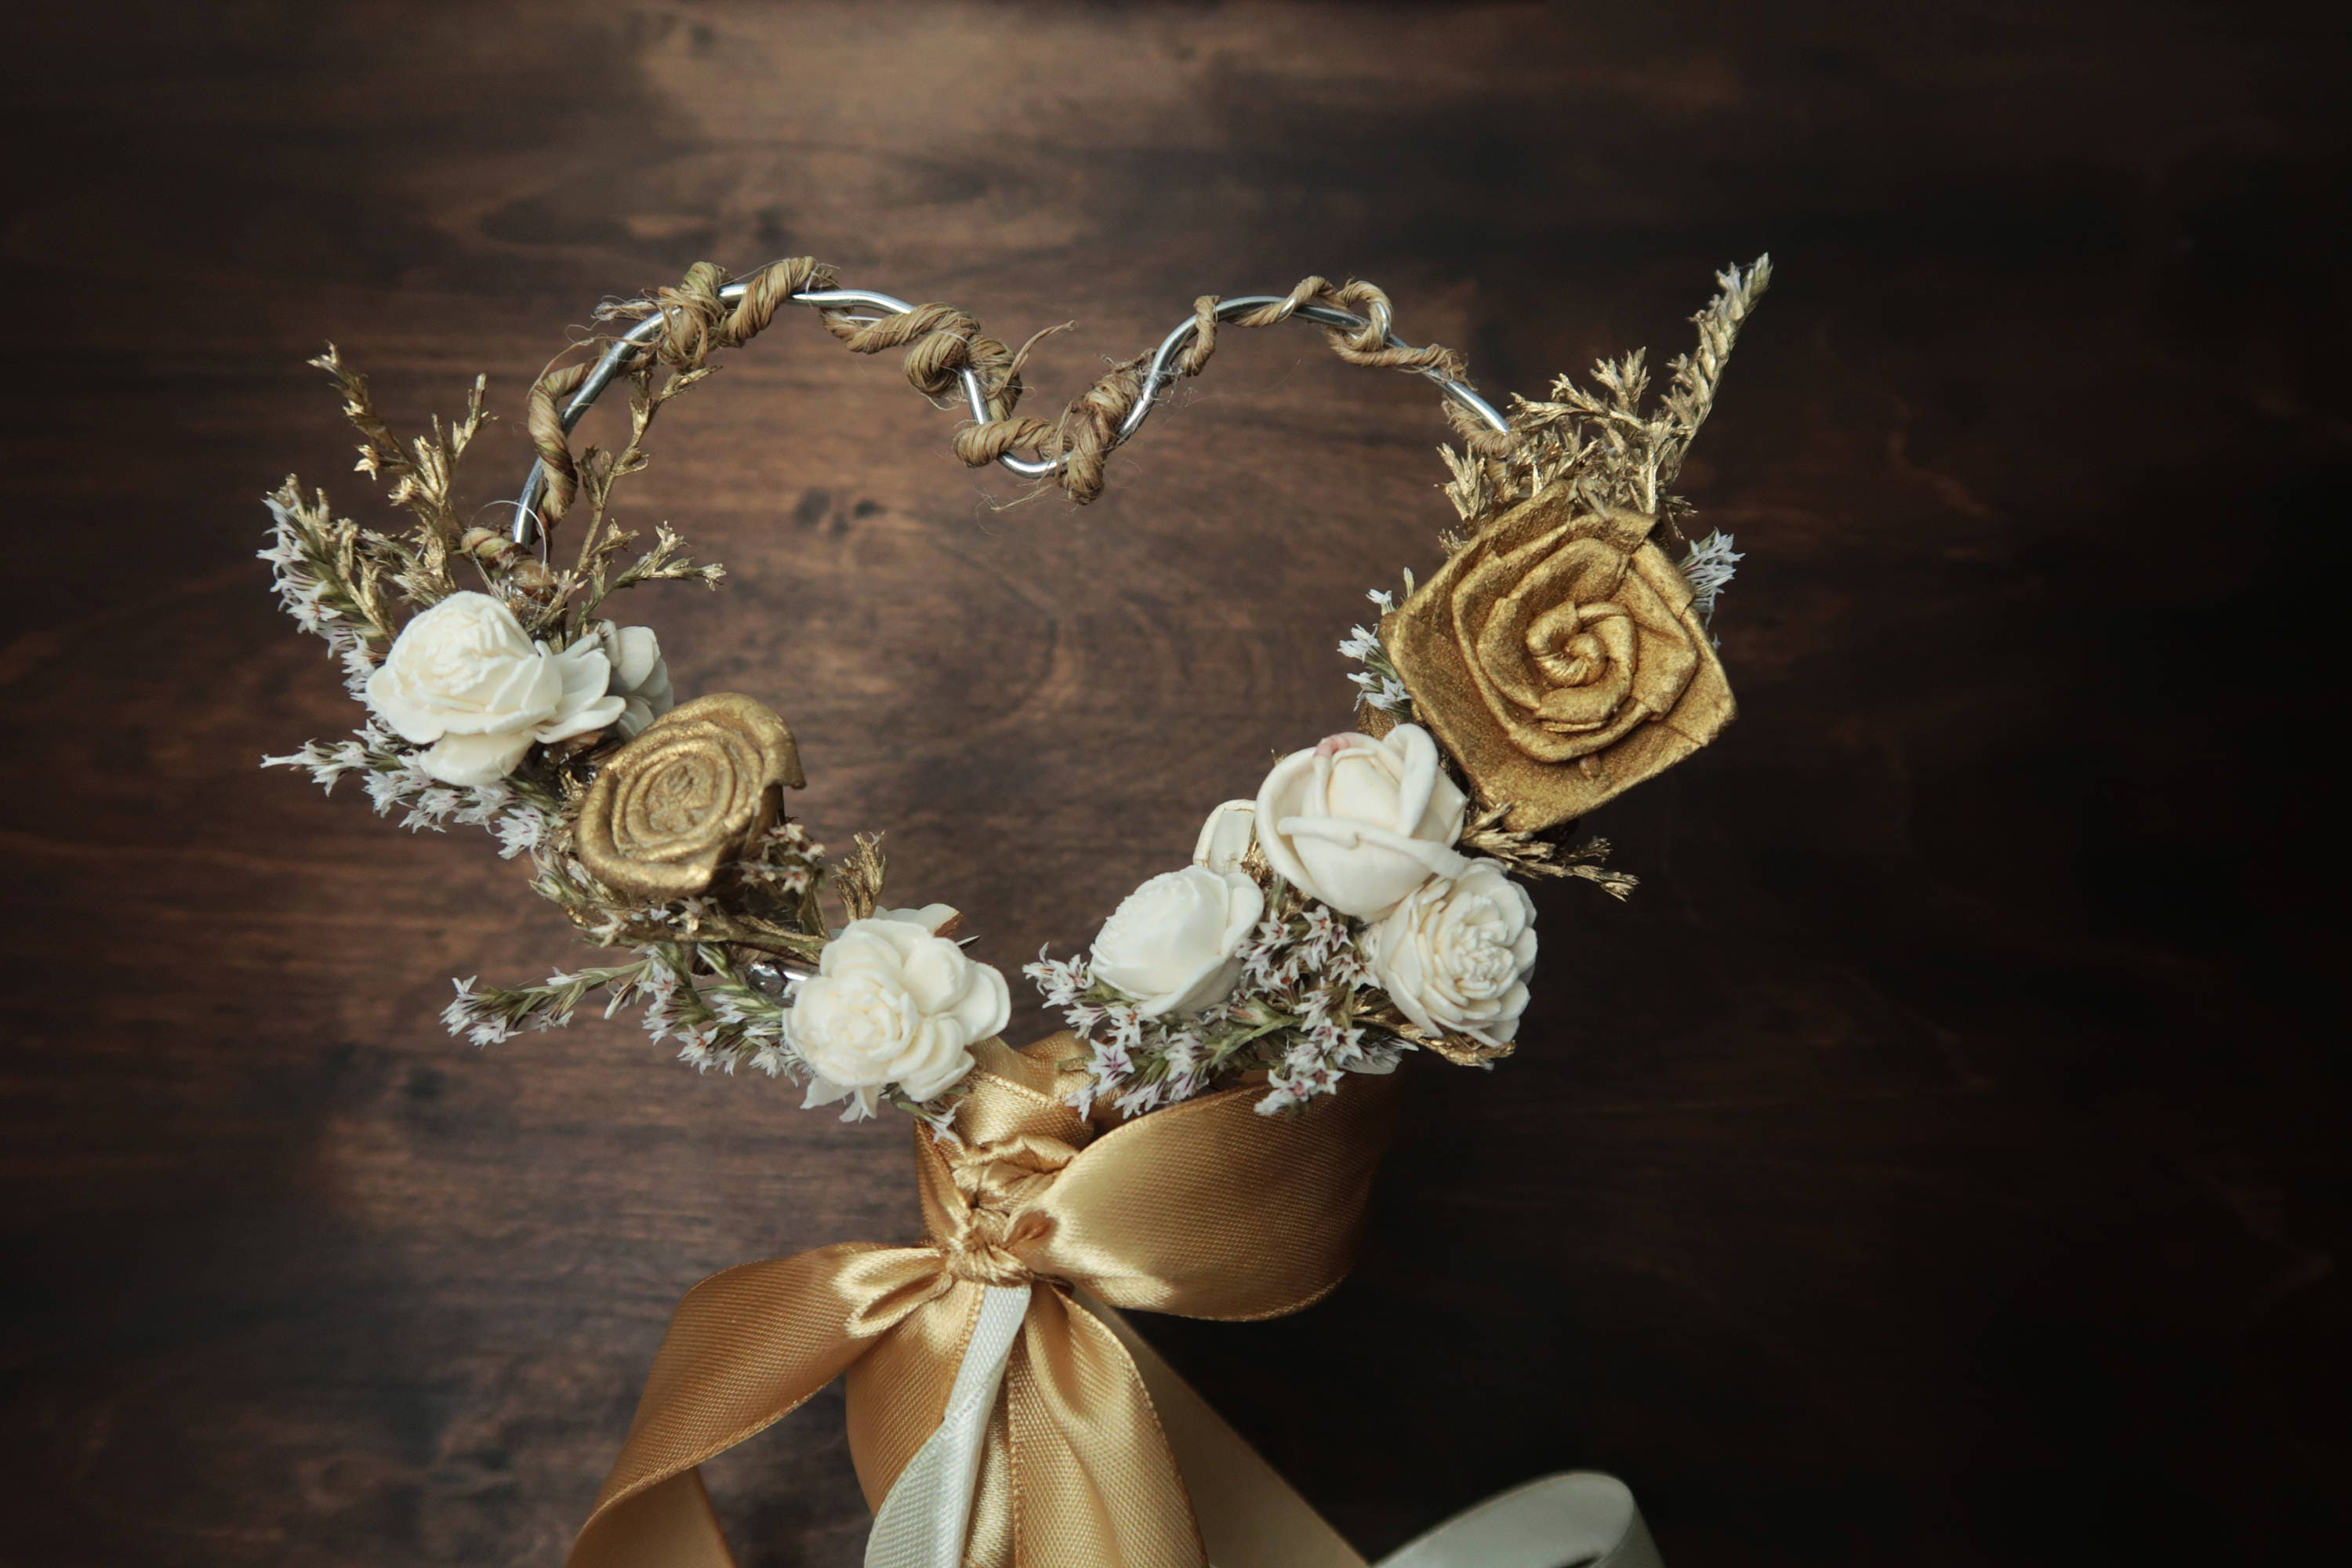 Gold ivory heart shaped flower girl wand elegant wedding bouquet ...